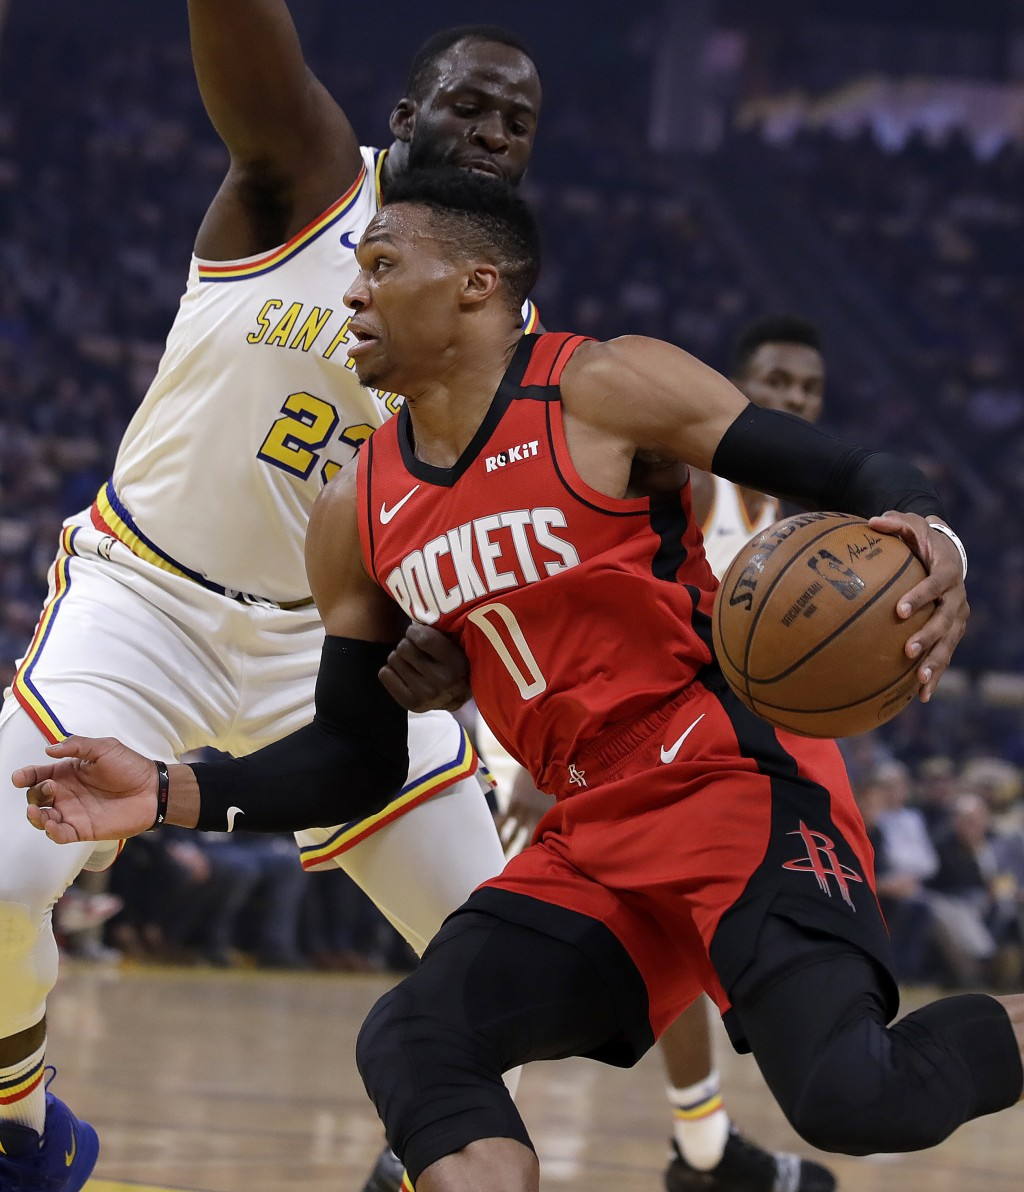 Houston Rockets' Russell Westbrook (0) drives the ball against Golden State Warriors' Draymond Green, left, during the first half of an NBA basketball...